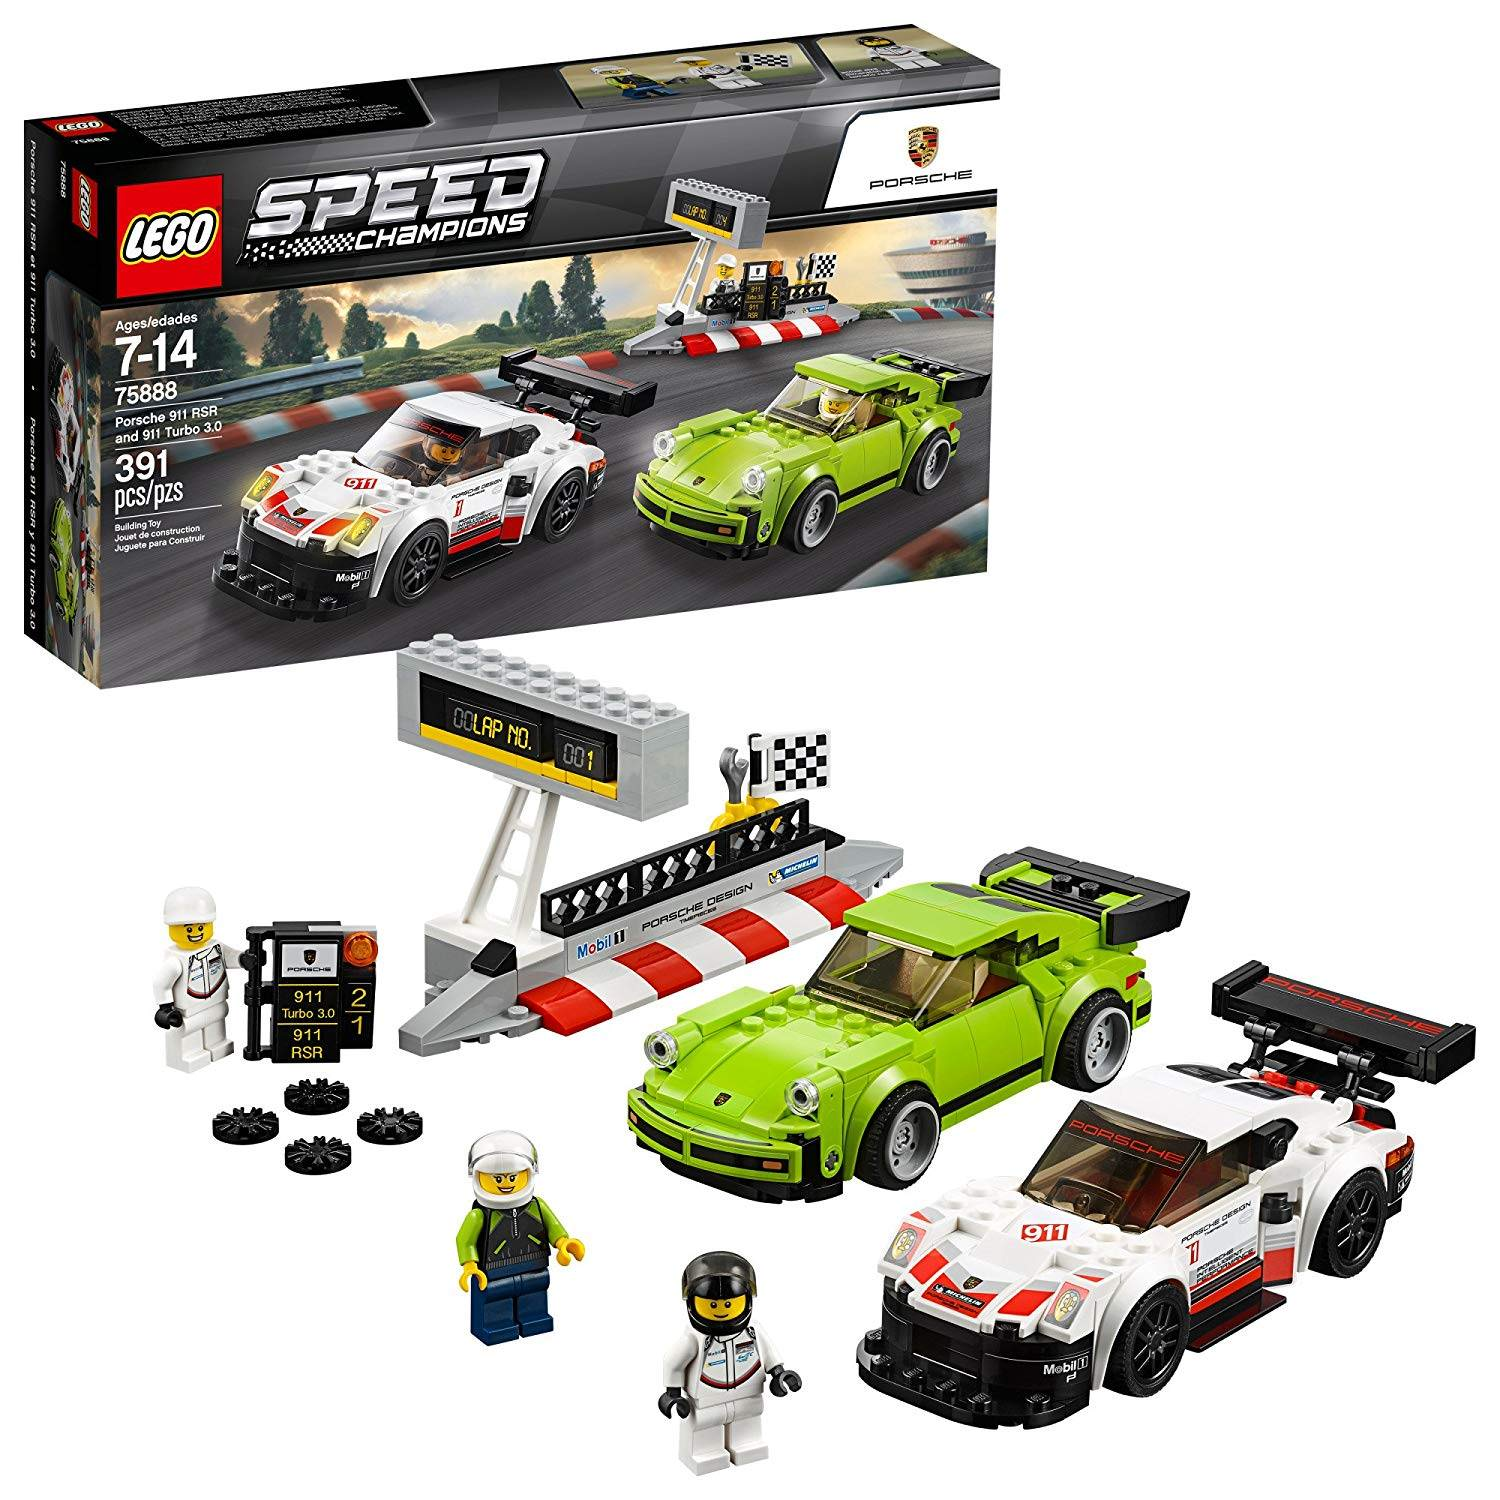 lego porsche 911 rsr and 011 turbo